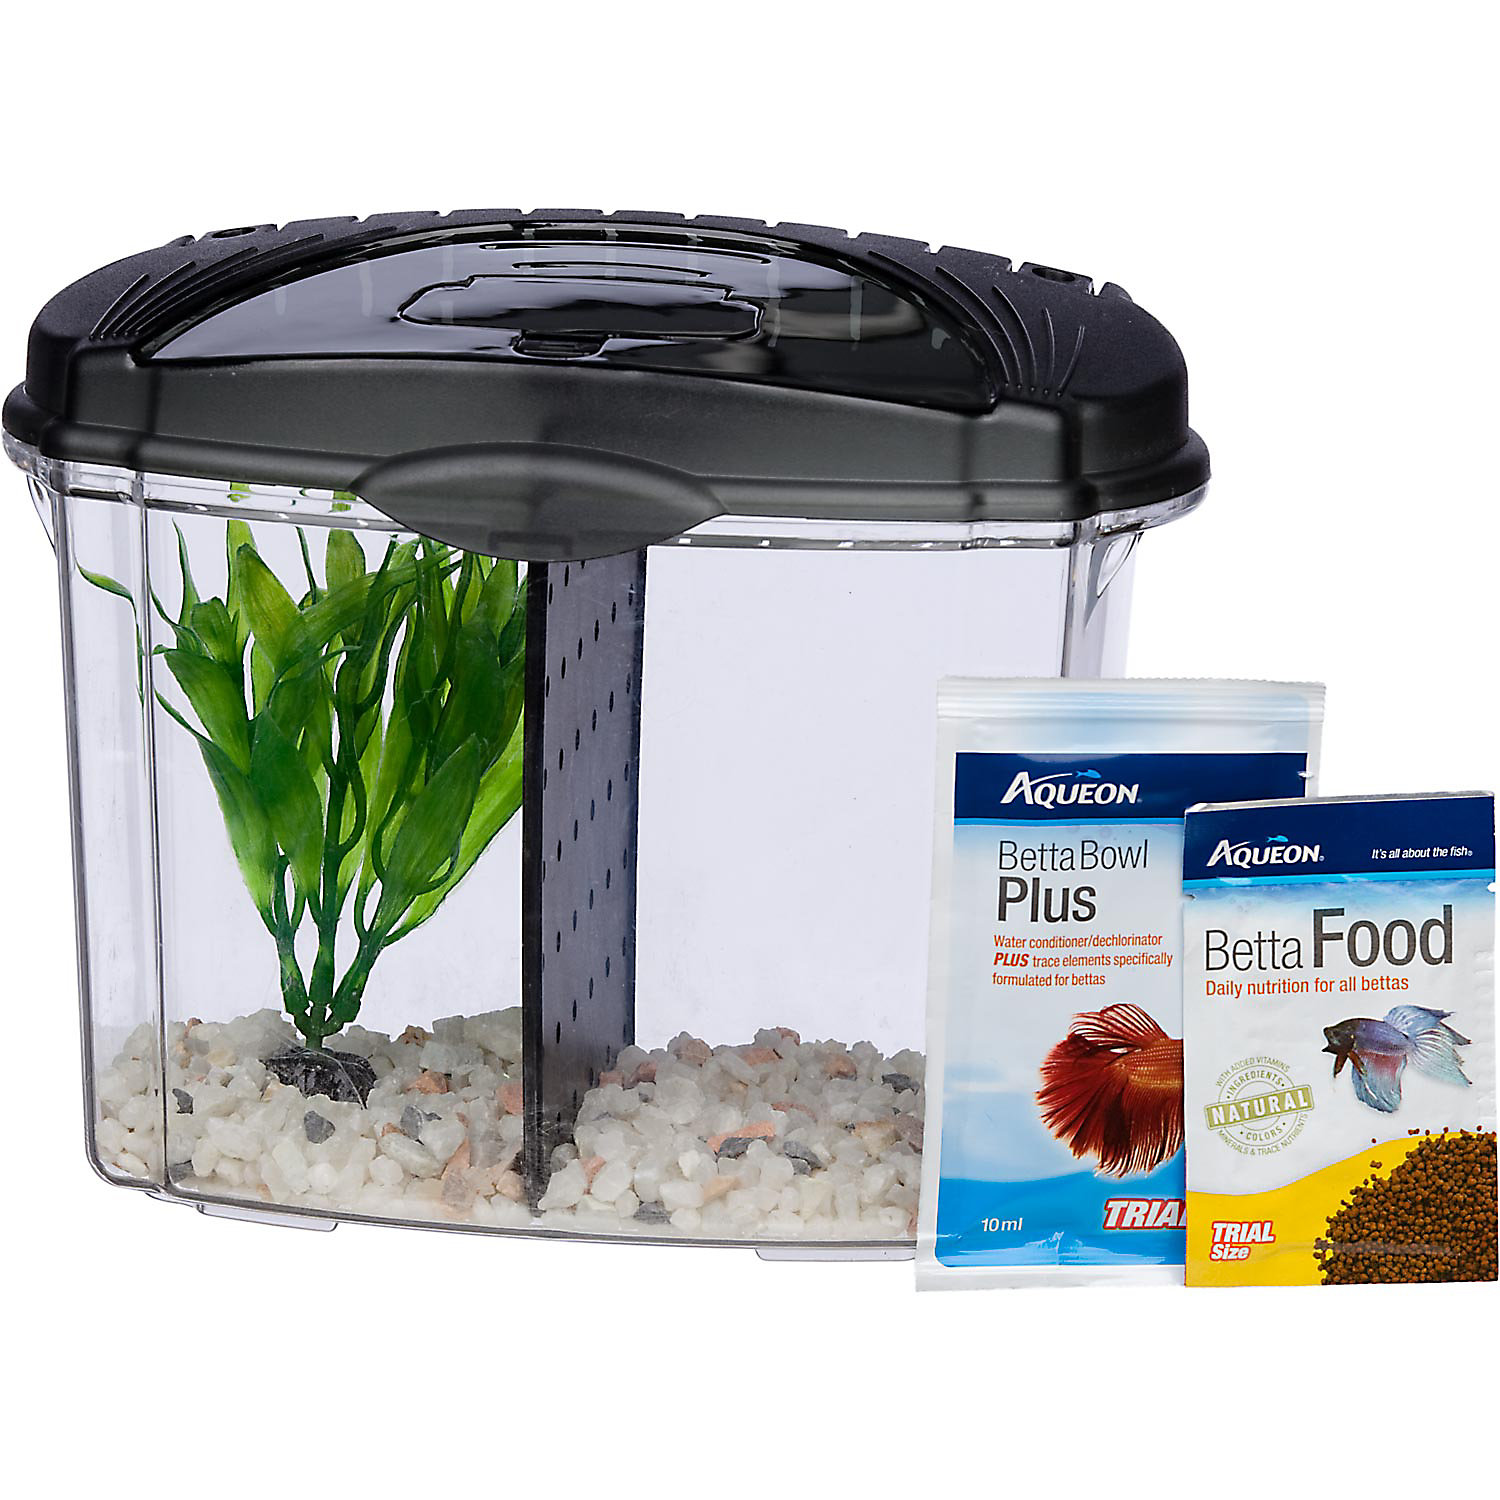 Aqueon Betta Bowl Aquarium Kit In Black .5 Gal.